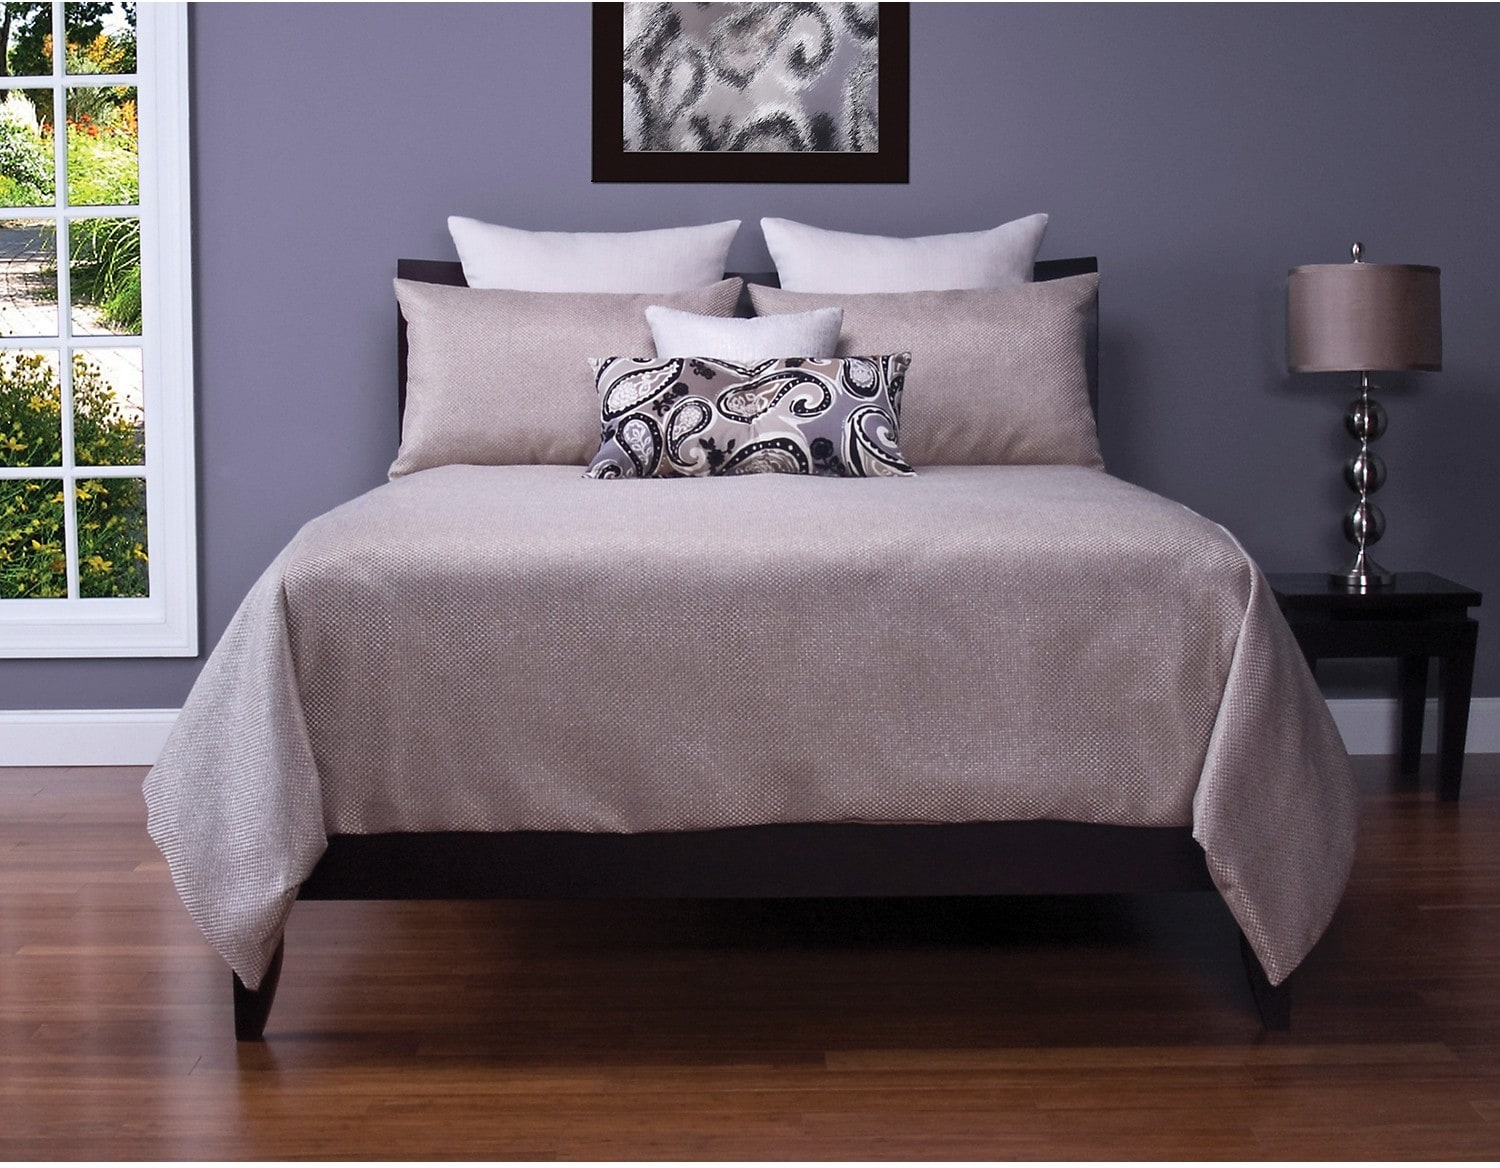 Mattresses and Bedding - Silk Route Lotus 8 Piece King Duvet Cover Set